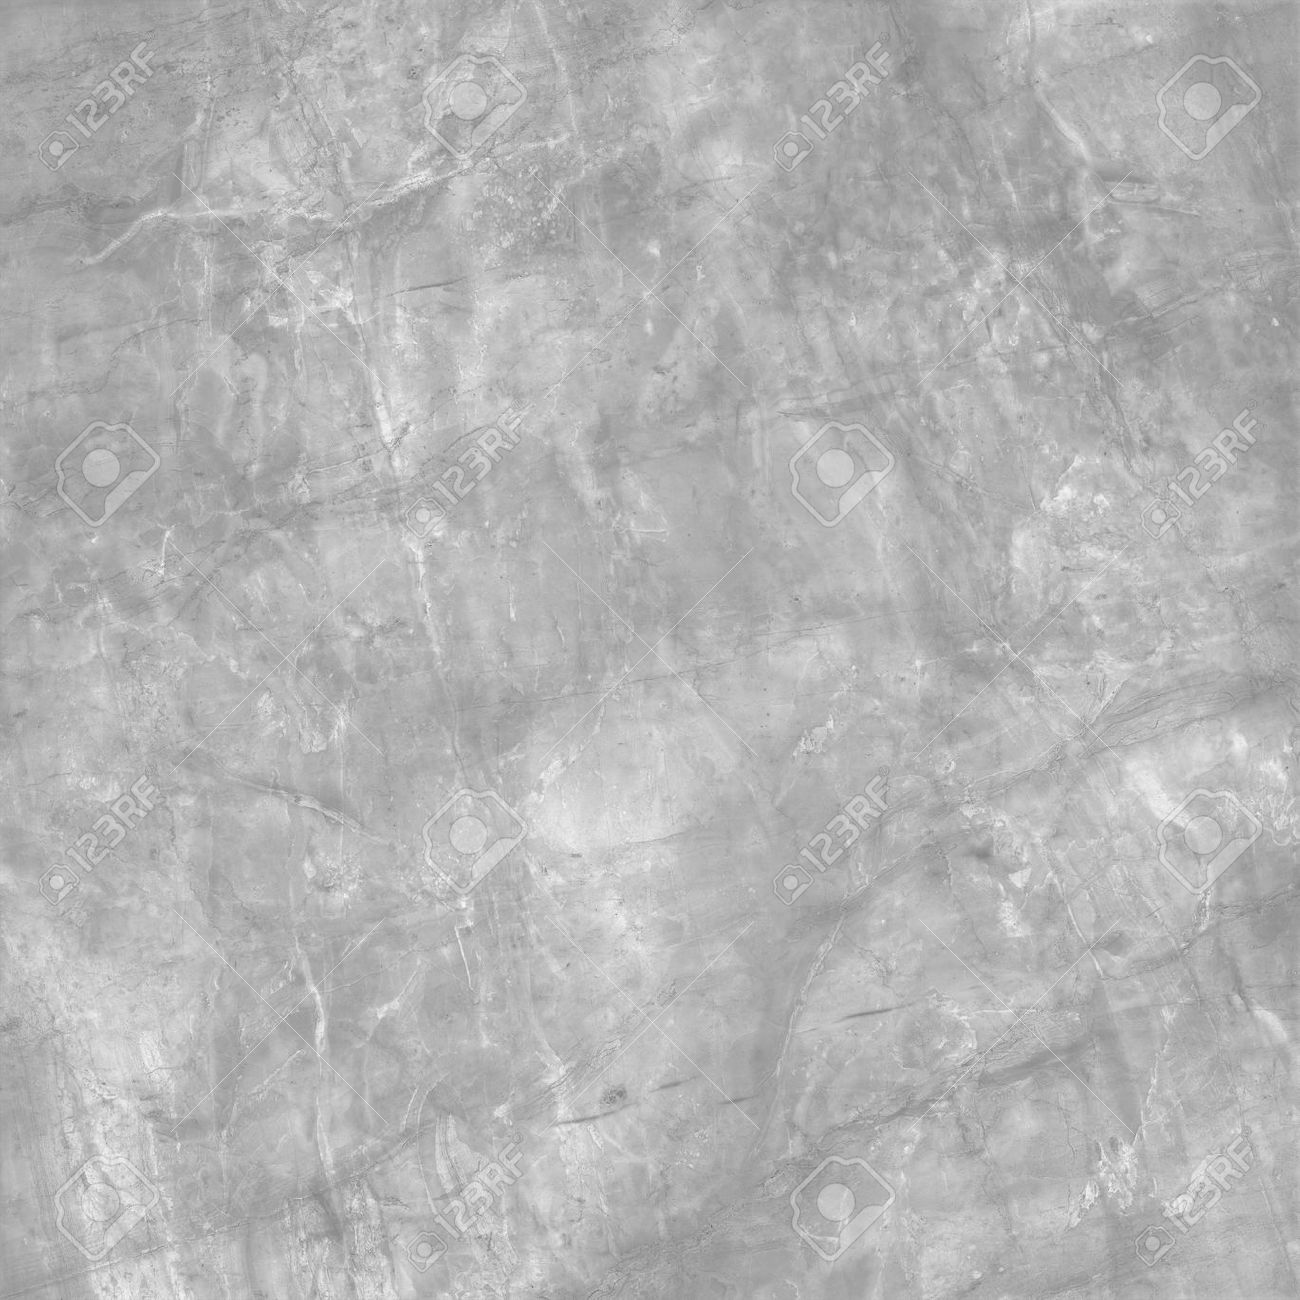 9187238 High resolution gray marble background marble